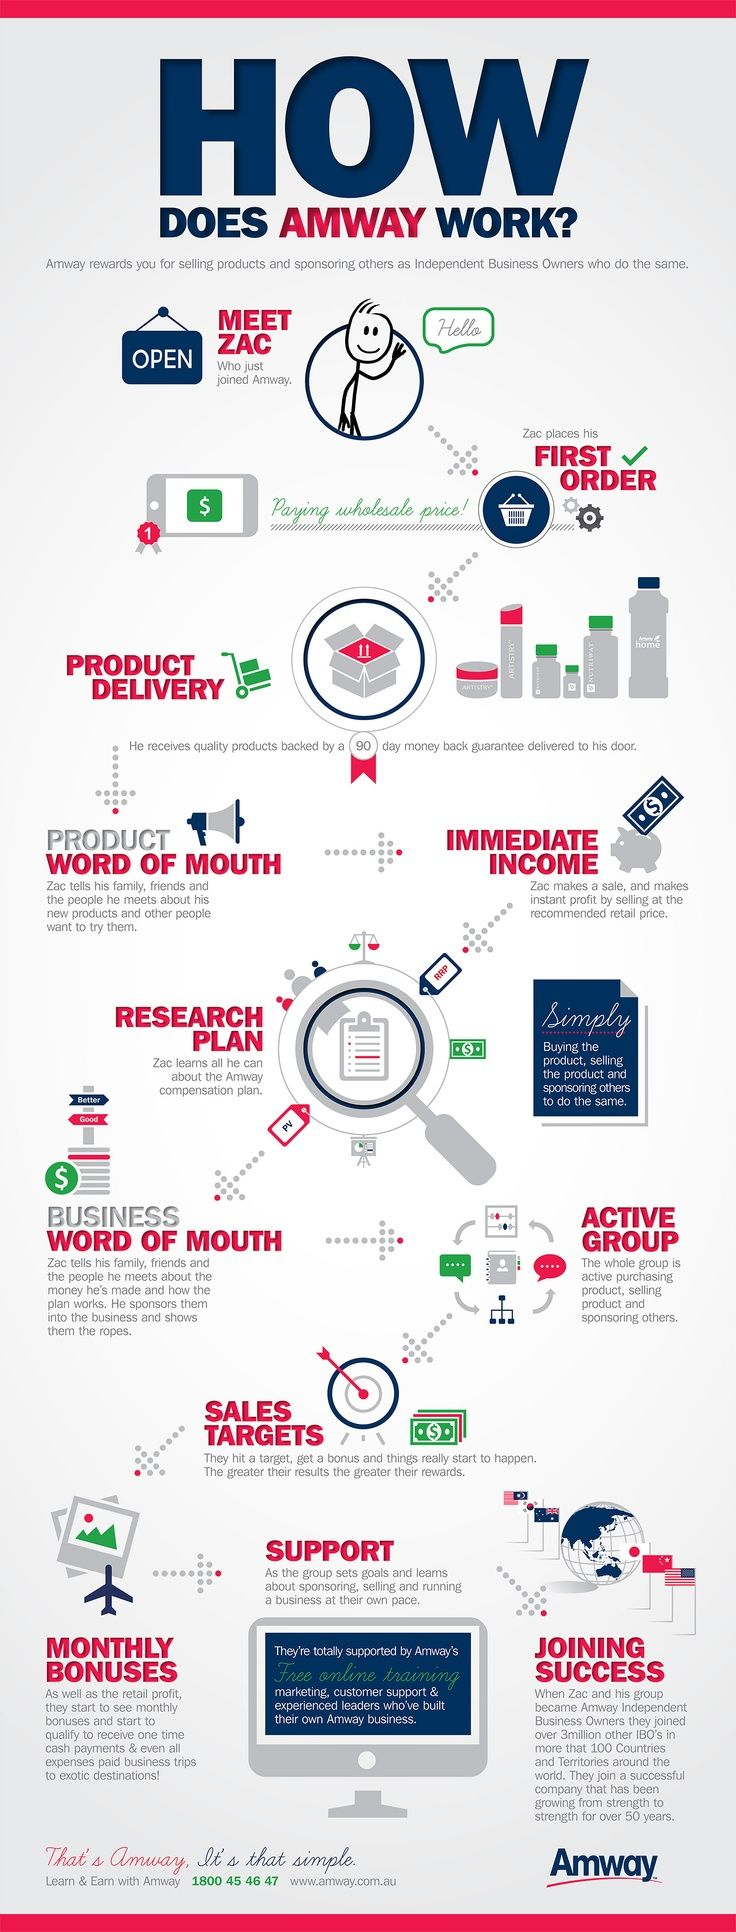 How Does Amway Work? For more information about Amway